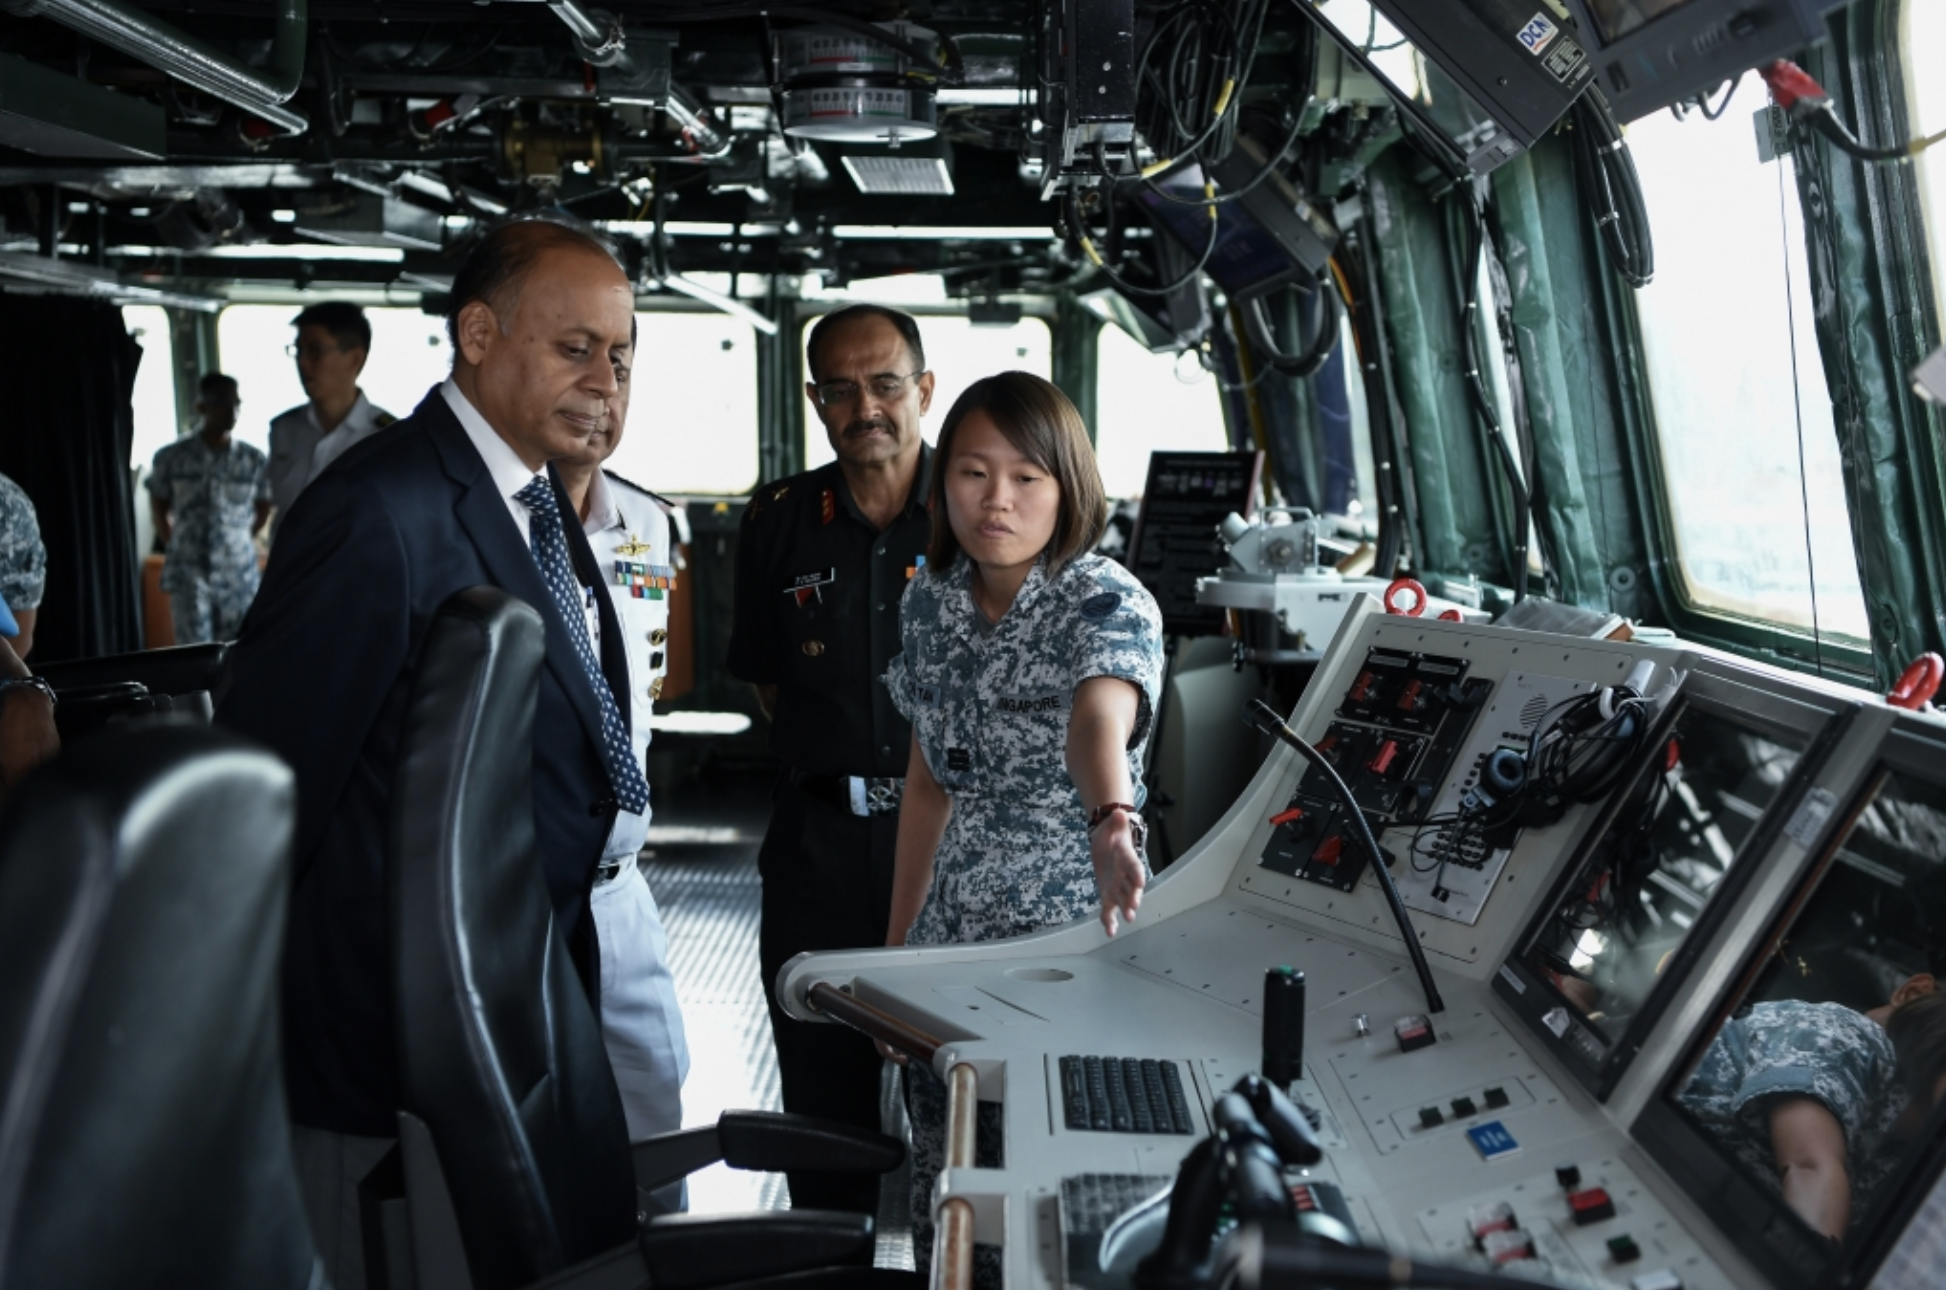 Dr Kumar receiving a brief on board the RSS Tenacious during a visit to Changi Naval Base. Photo courtesy: MINDEF